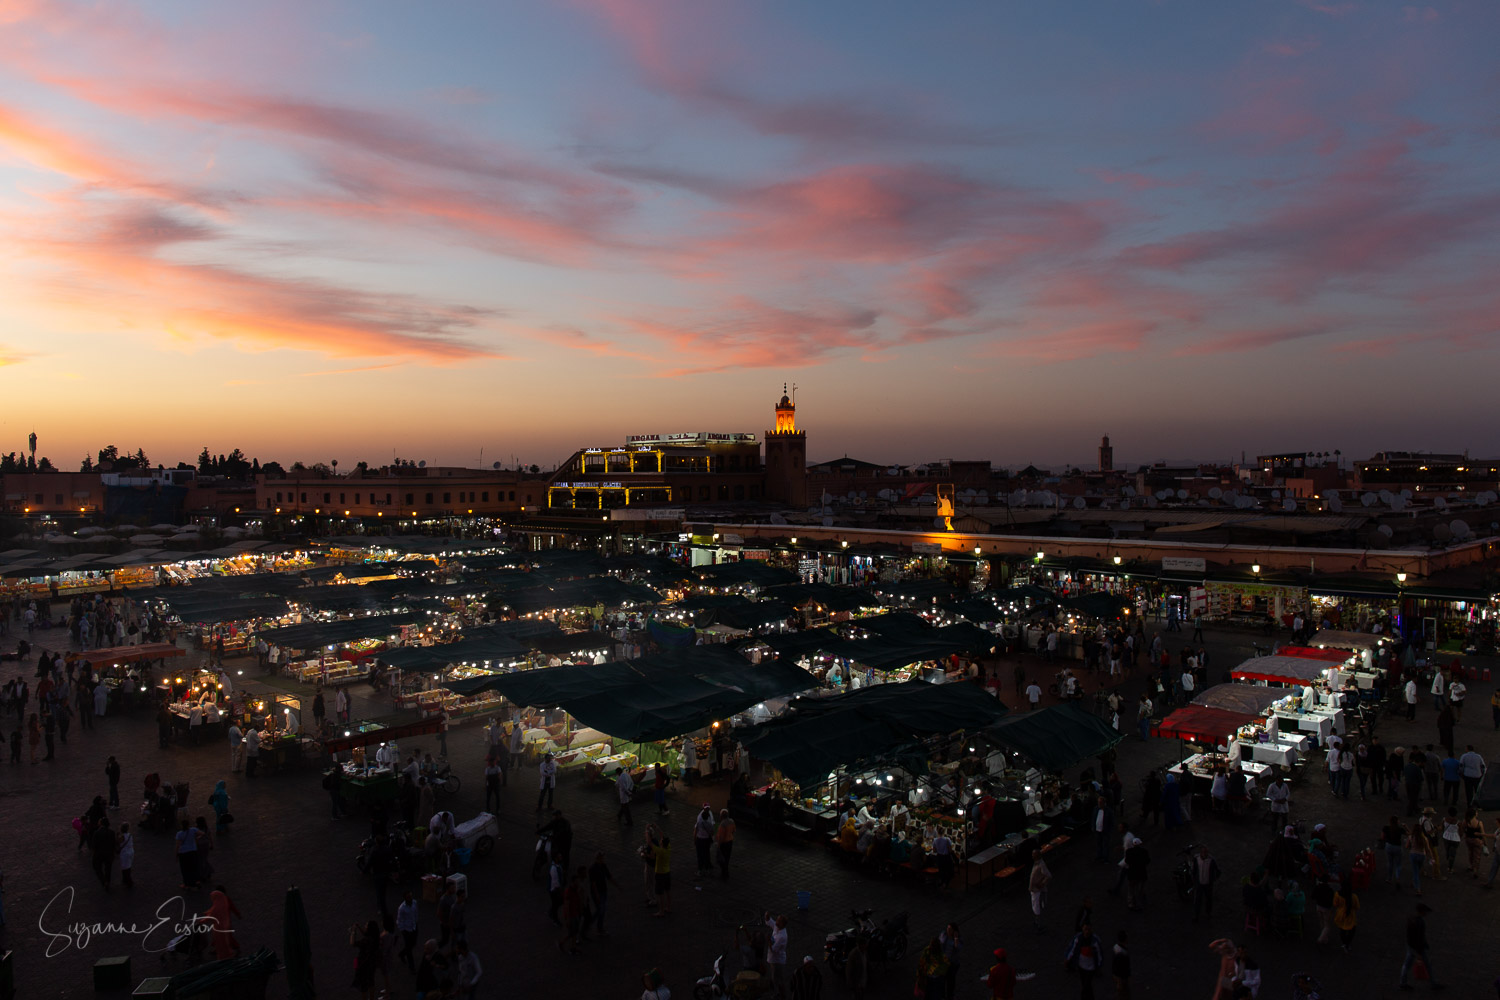 Sunset in Marrakech allows photography without people or the associated stress, especially when you find a balcony over looking the night market.